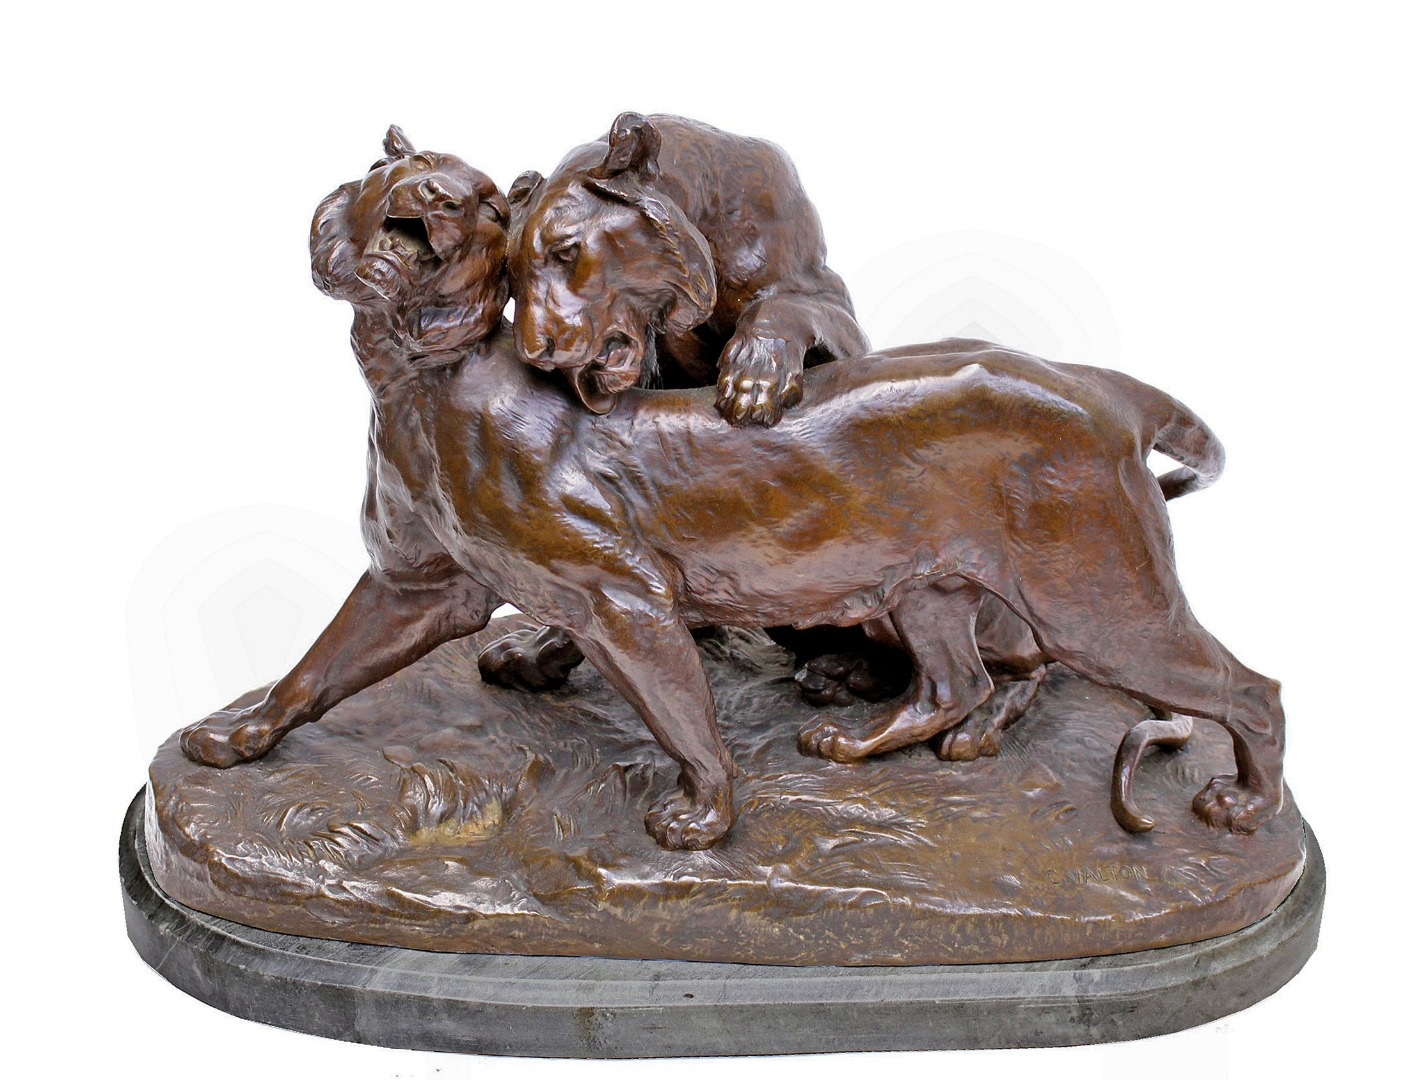 BRONZE GROUP by Charles Valton (1851-1918)